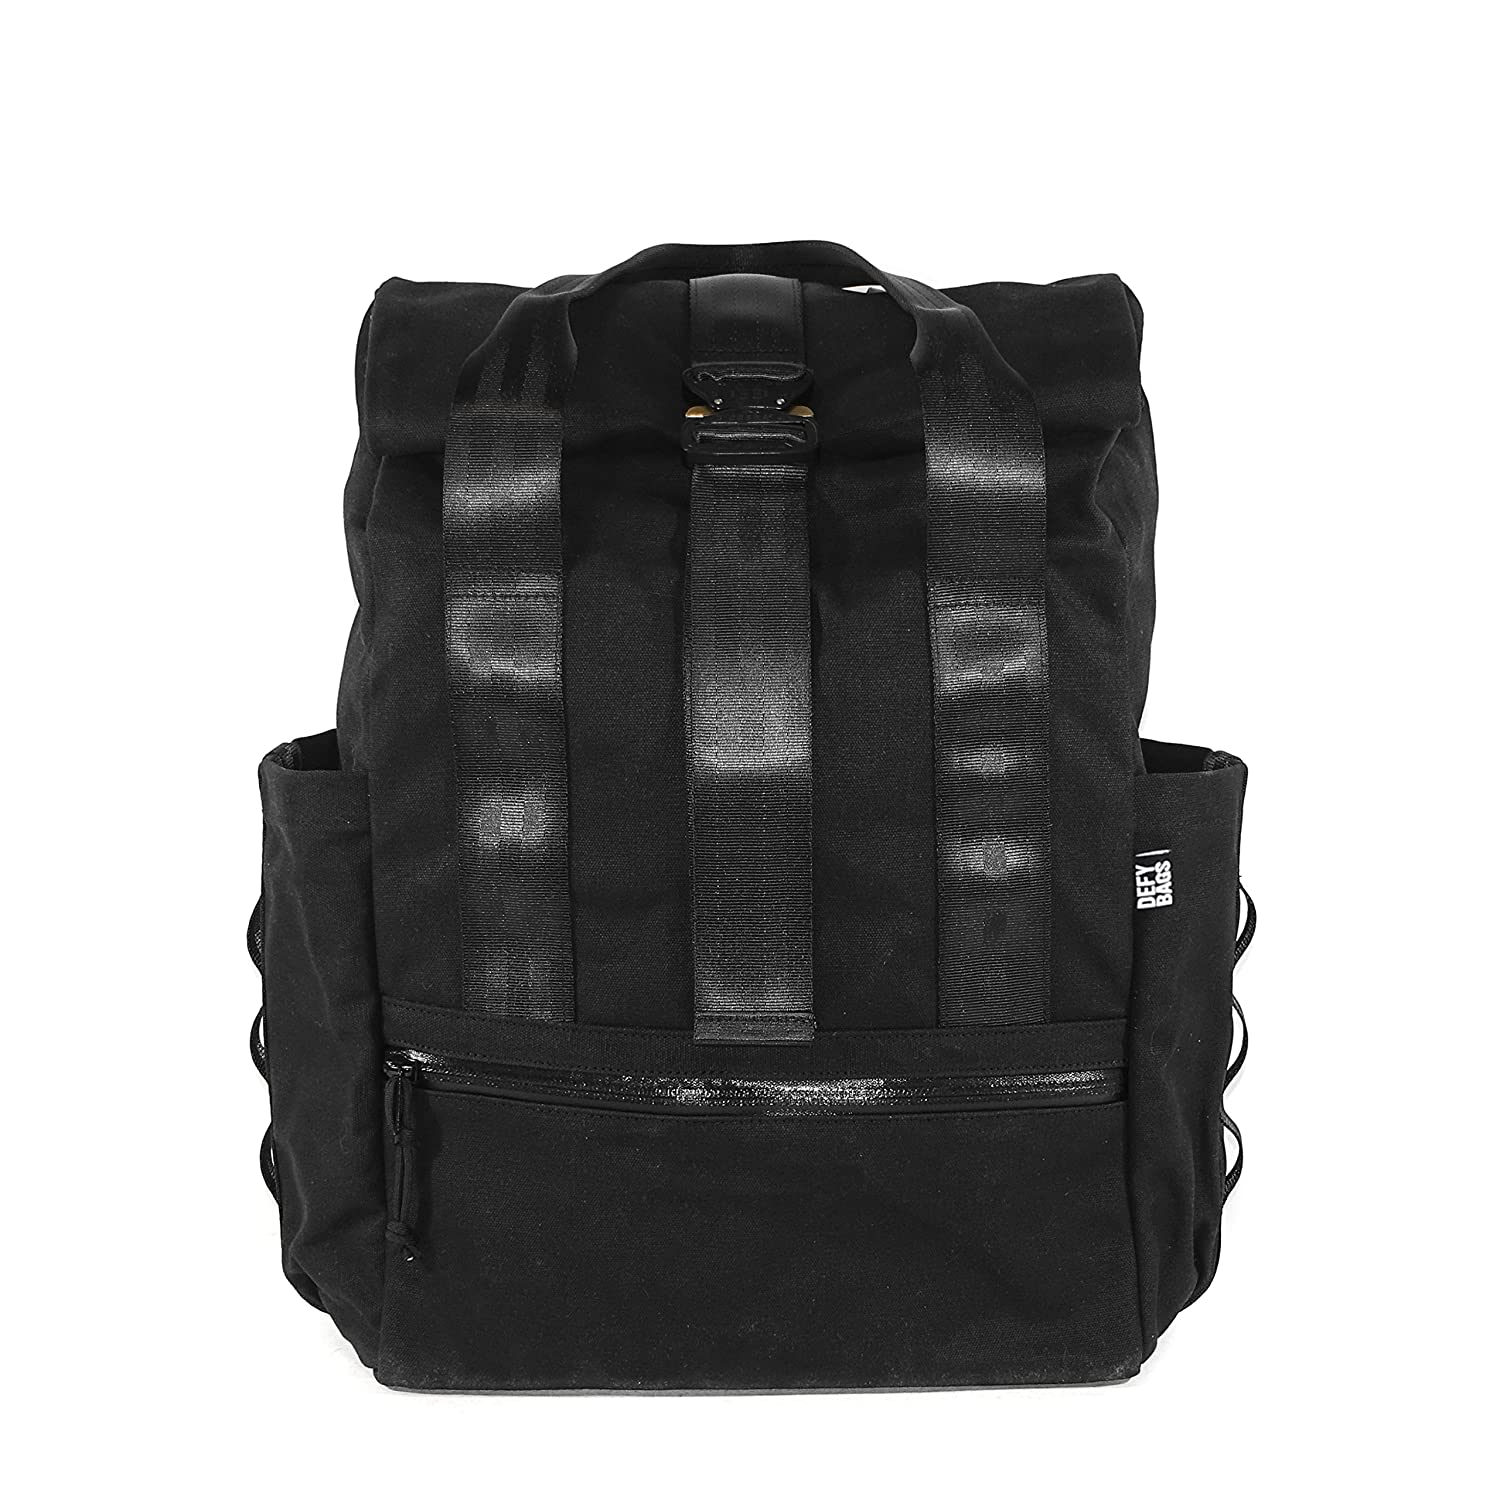 VerBockel Rolltop Backpack  a8a604d185862